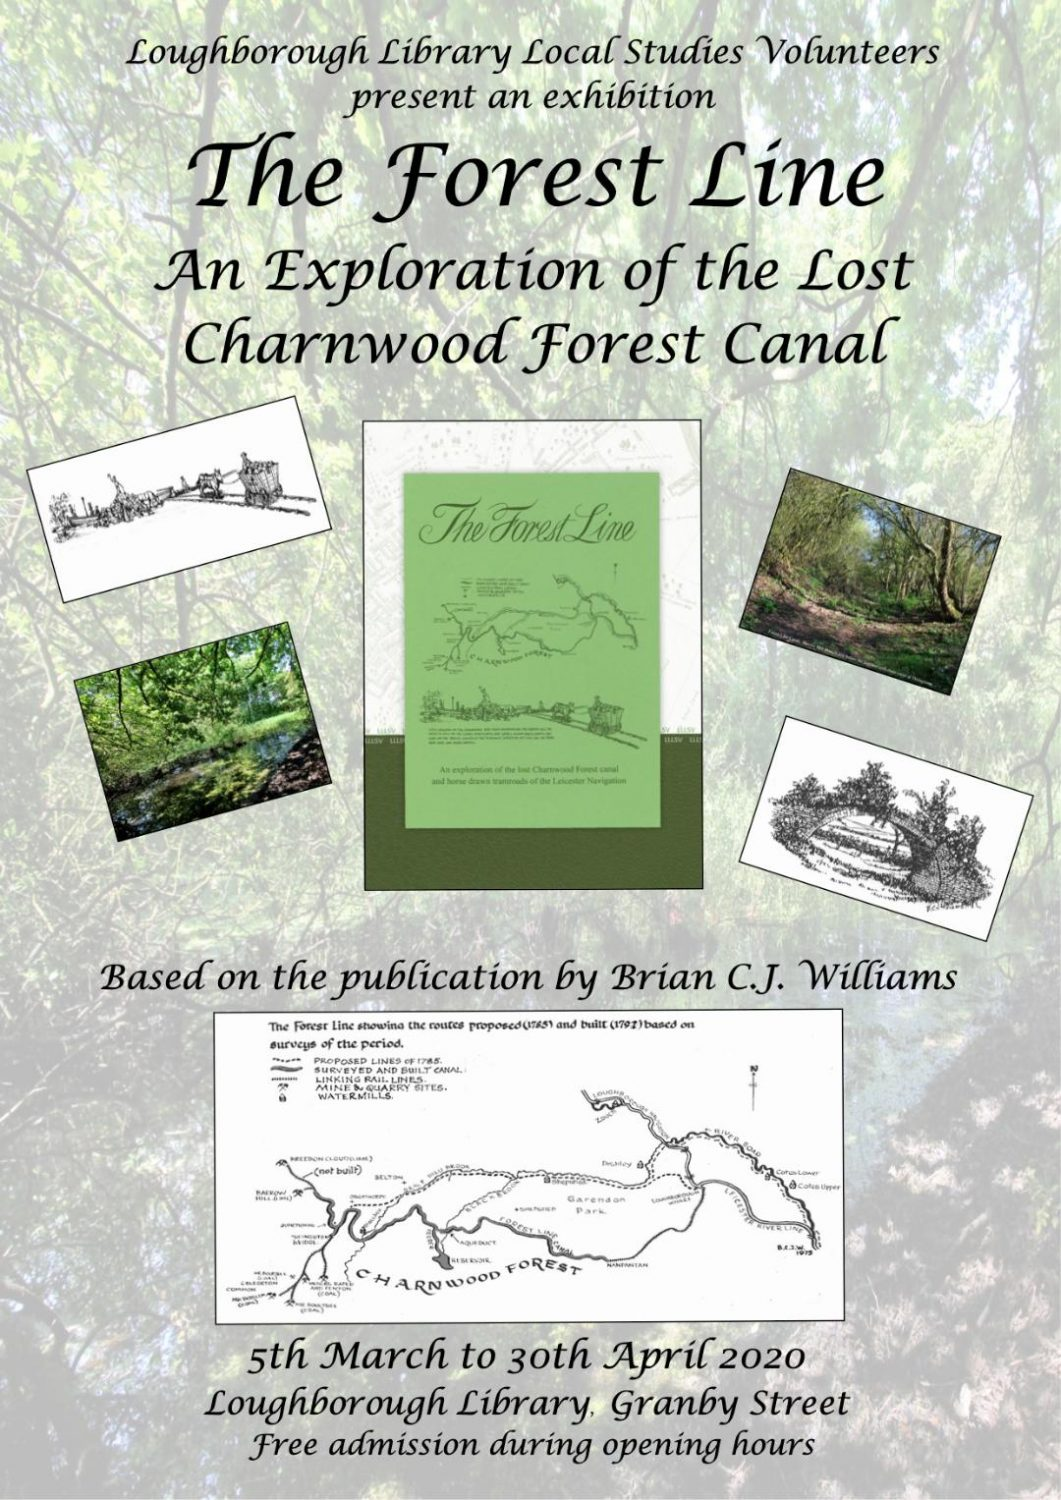 The Forest Line; A new exhibition at the Loughborough Library